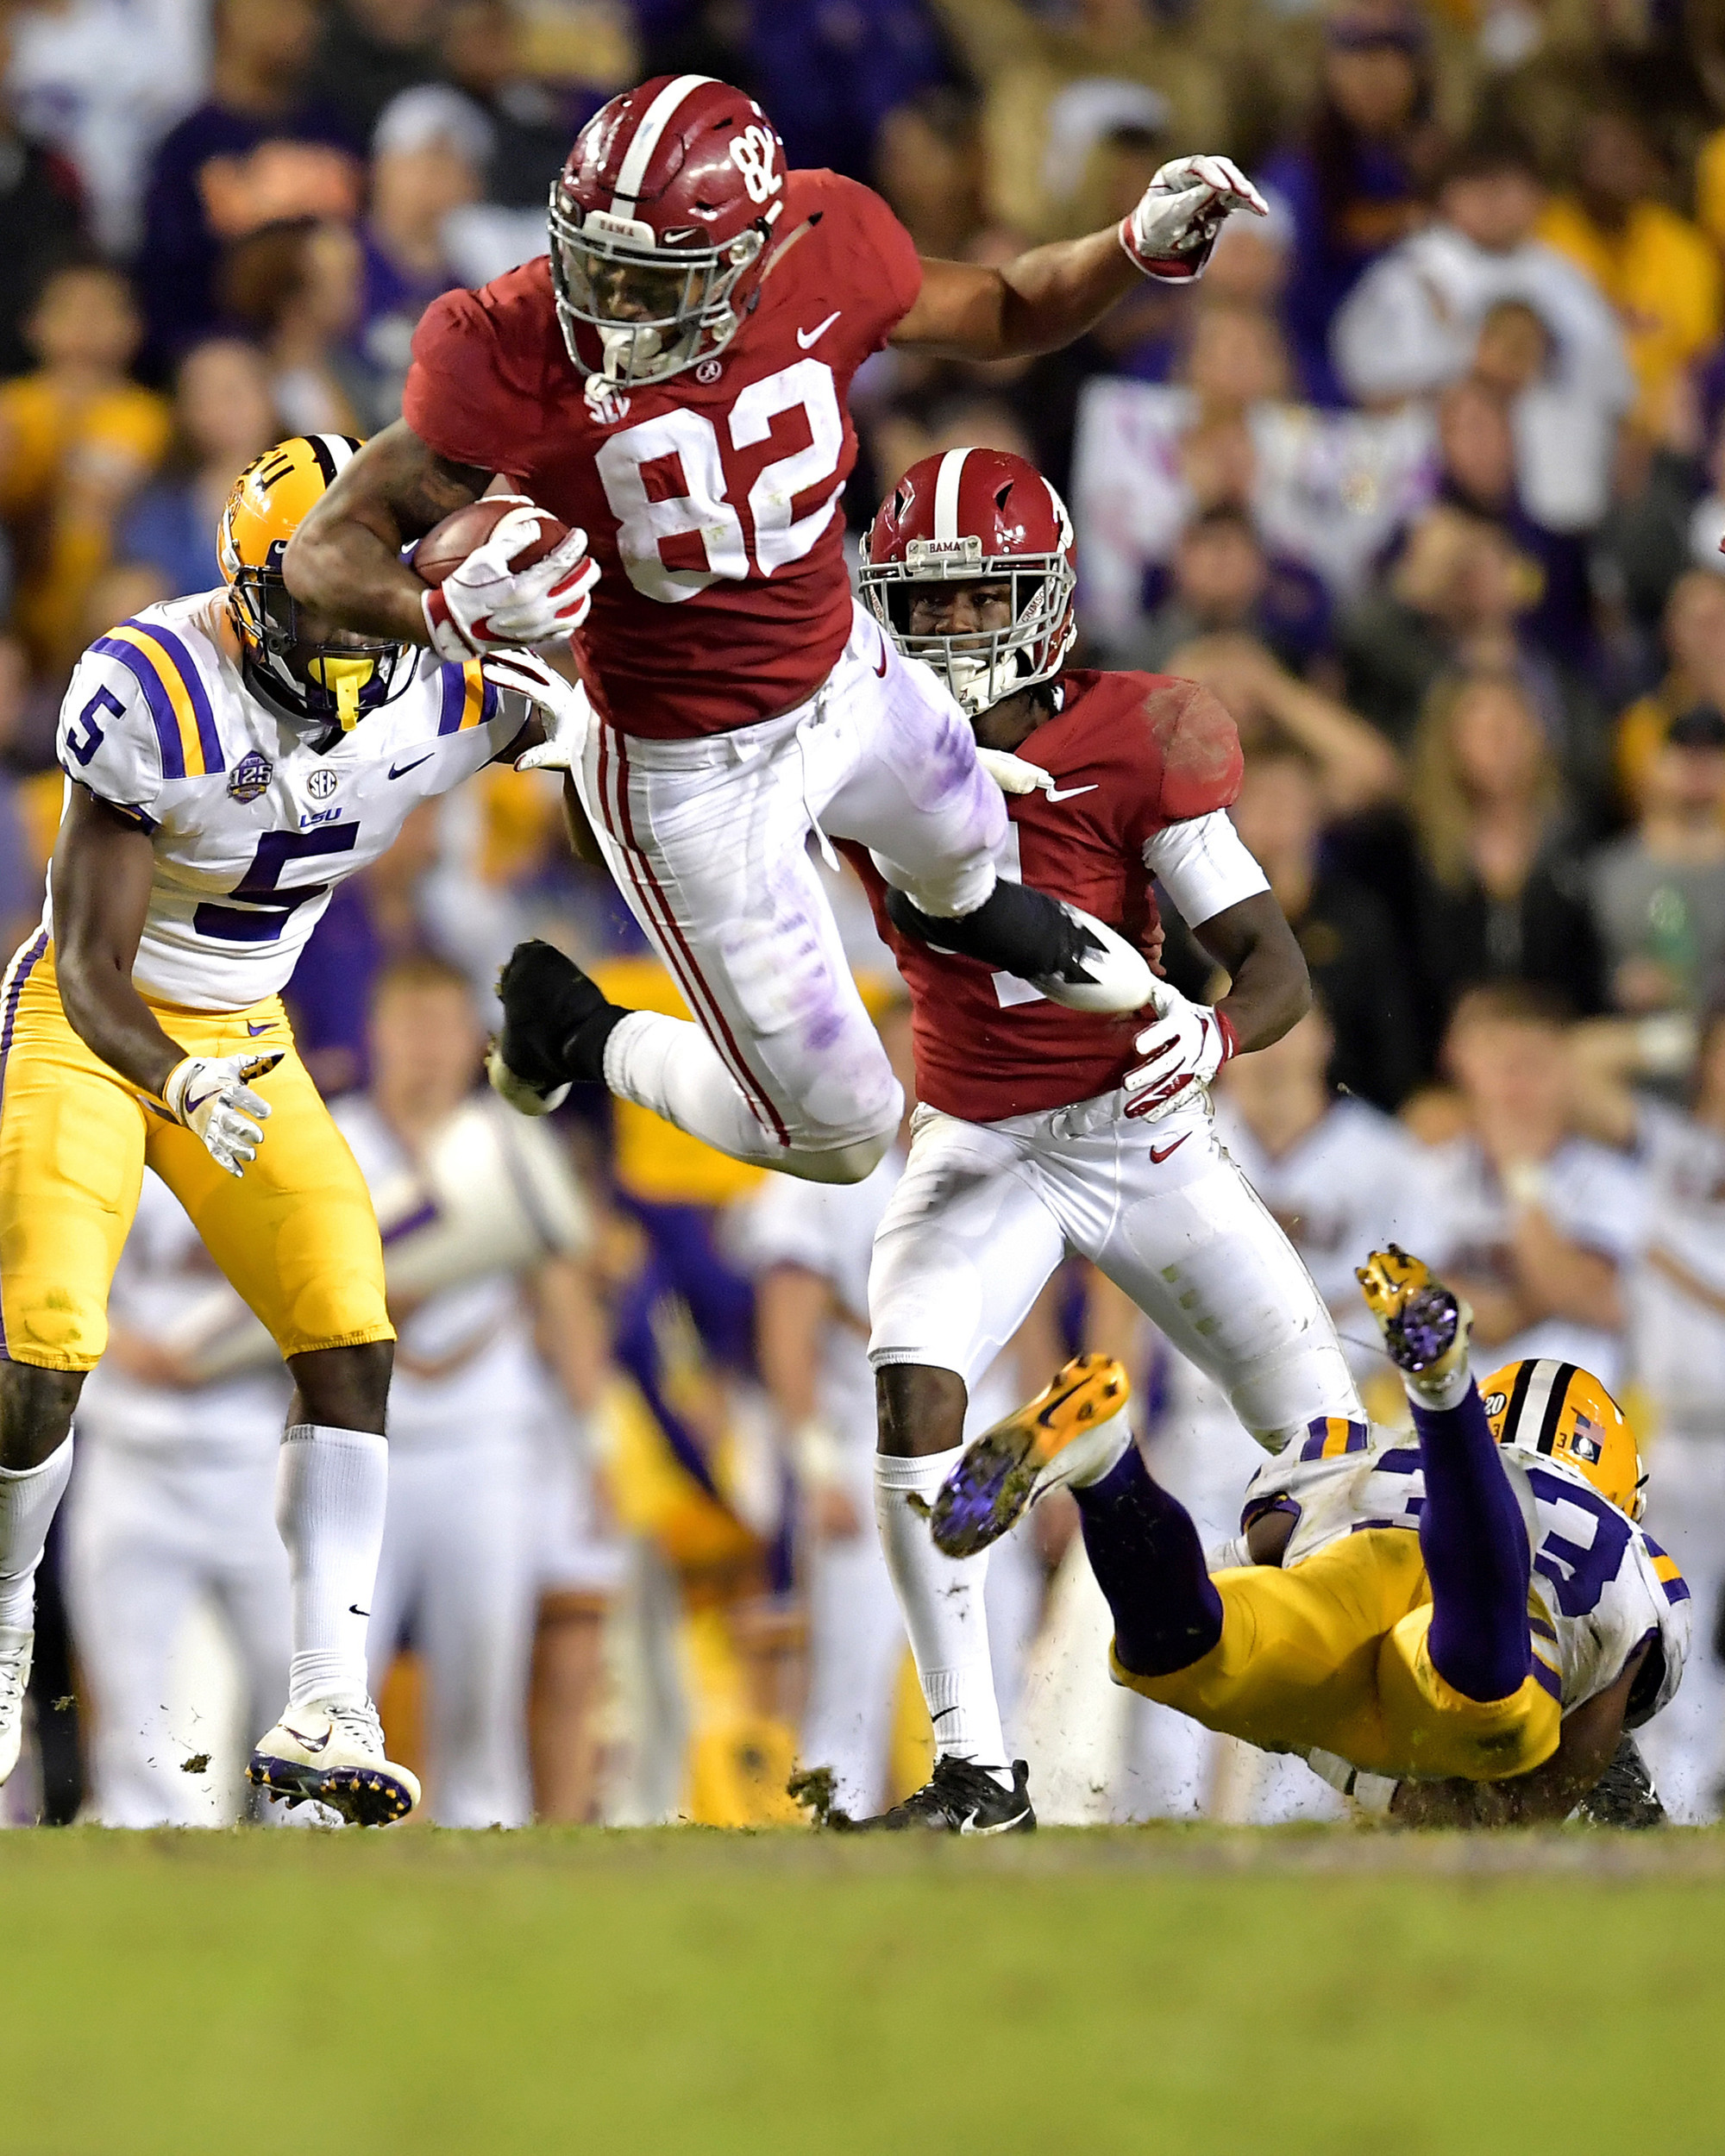 Alabama Crimson Tide tight end Irv Smith Jr. (82) adds yards after the reception during the second half of an NCAA football game against the LSU Tigers Saturday, November 3, 2018, at Tiger Stadium in Baton Rouge, La. Alabama wins 29-0. (Photo by Lee Walls)